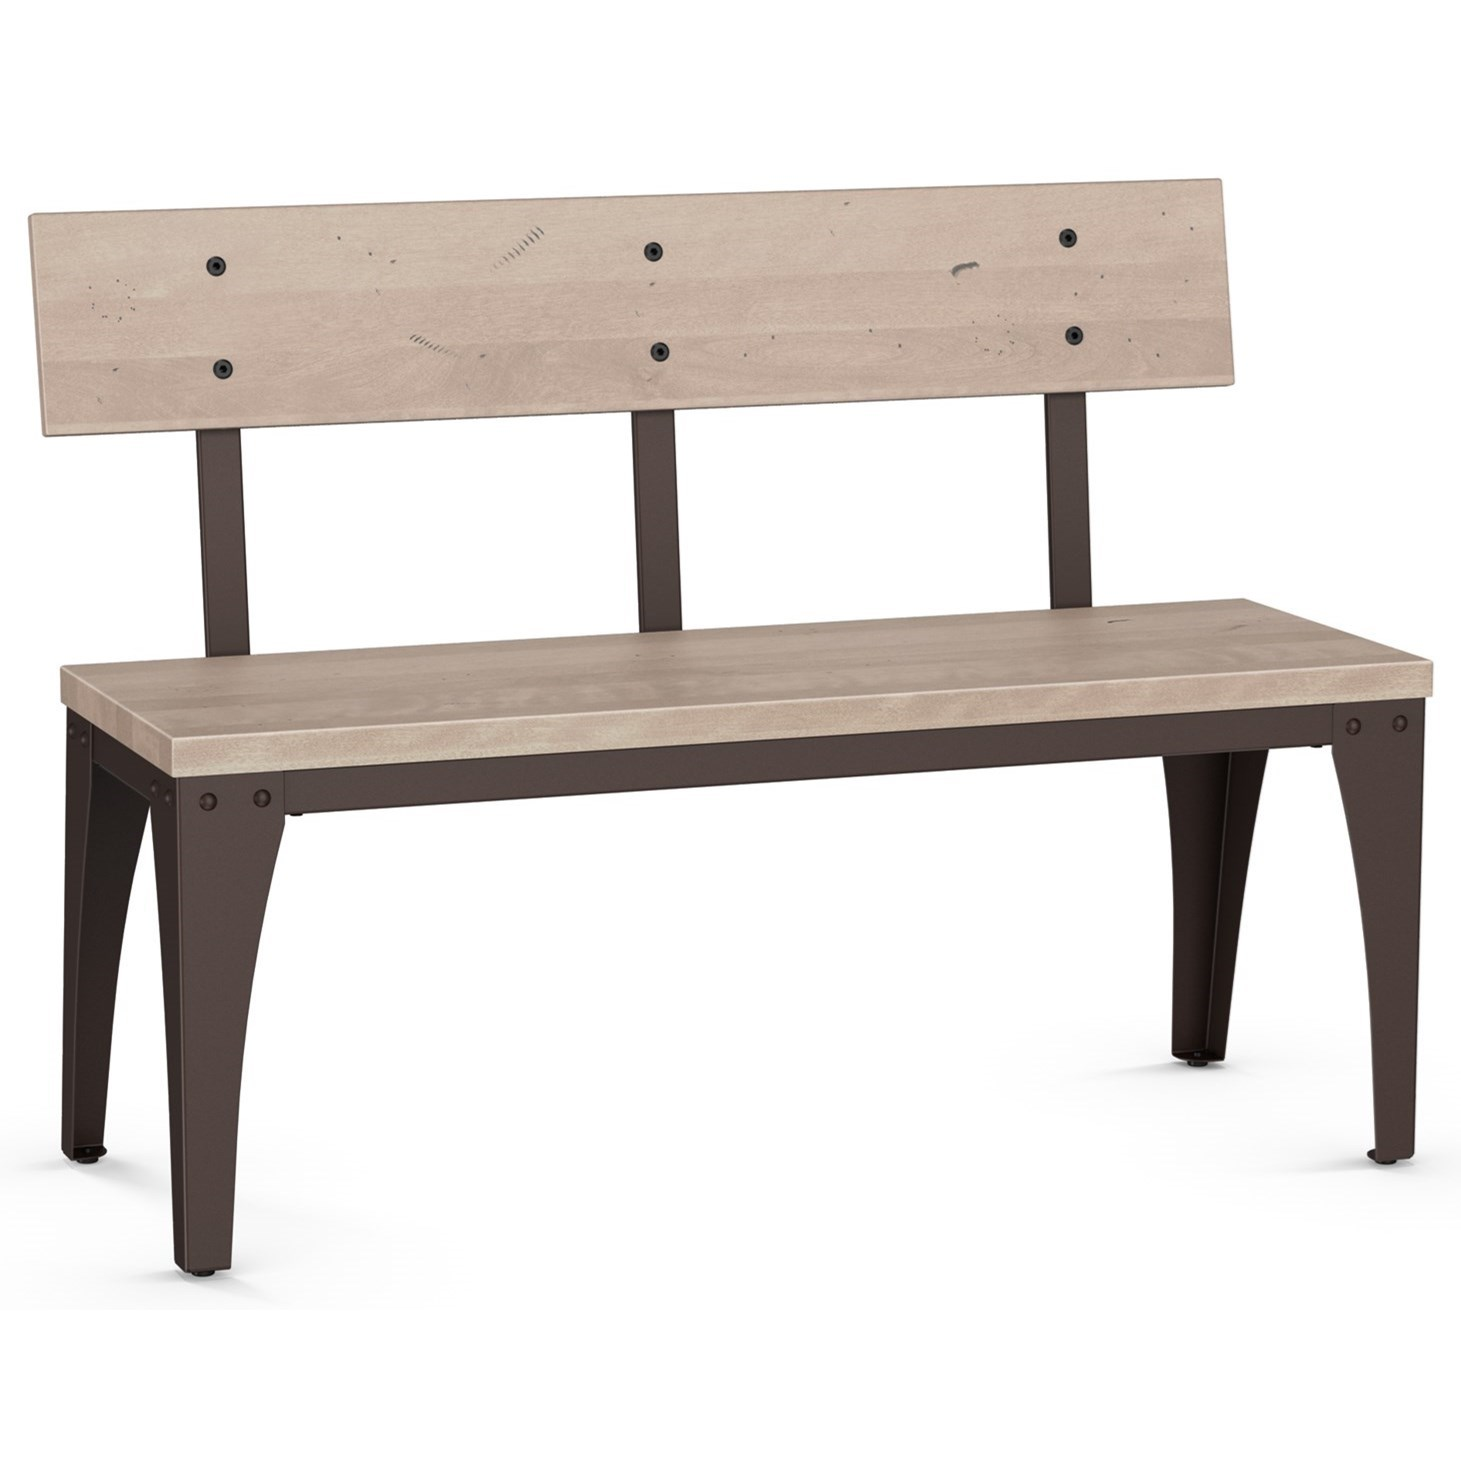 Architect Bench with Wood Seat